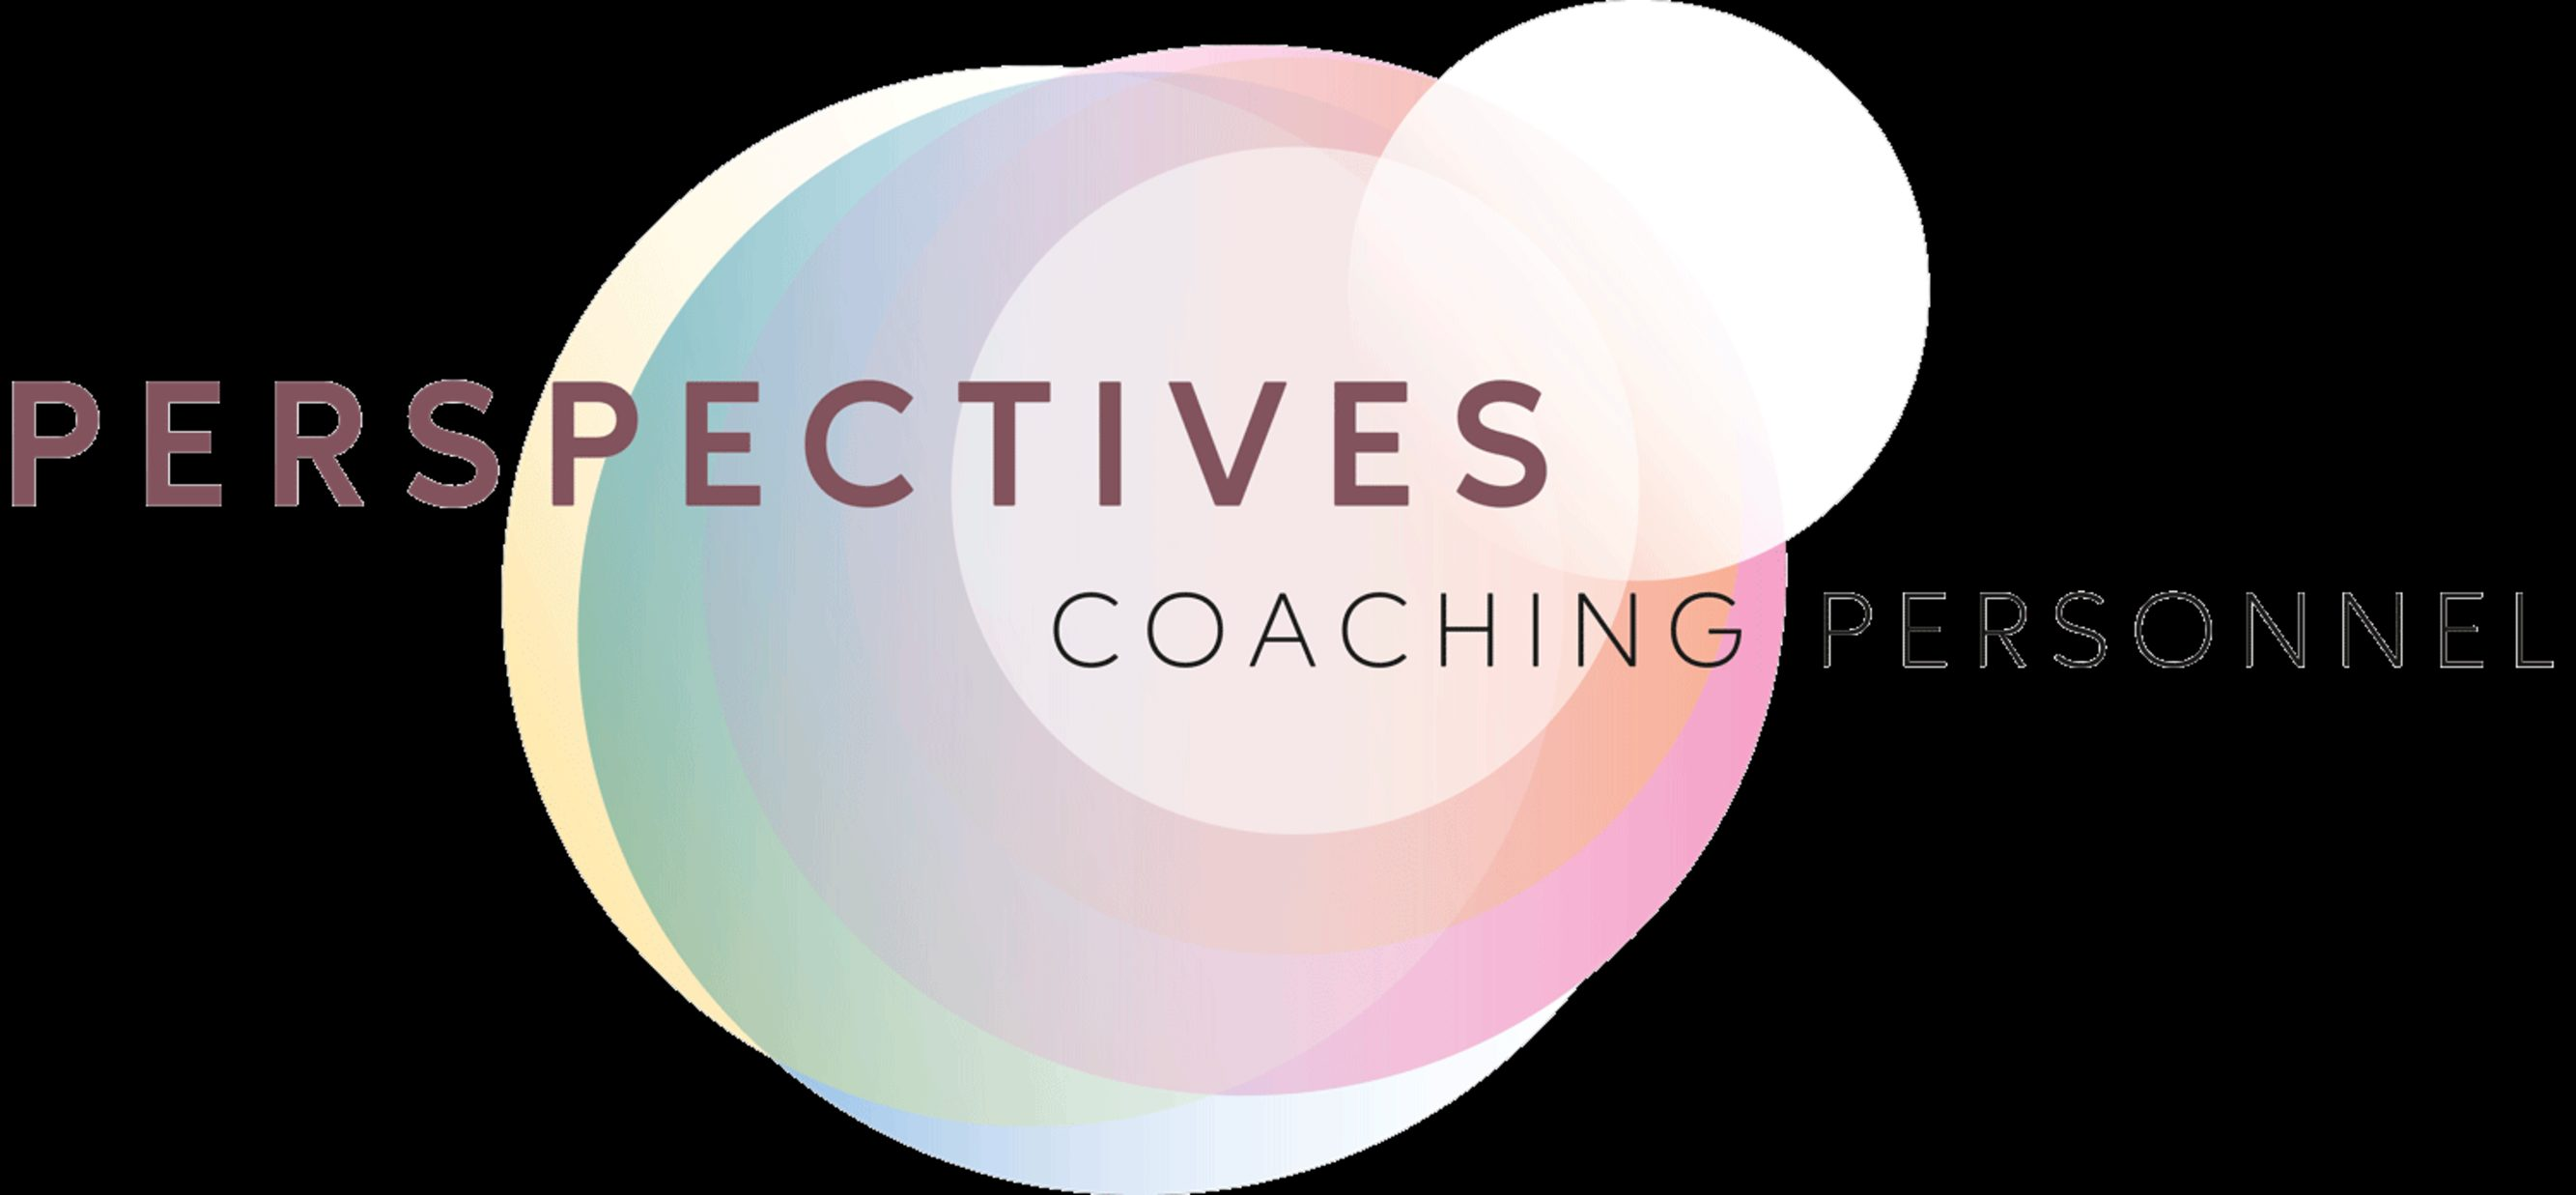 https://www.fcrichemond.ch/wp-content/uploads/2021/07/Annonce-1-Perspective-Coaching-pdf.jpg